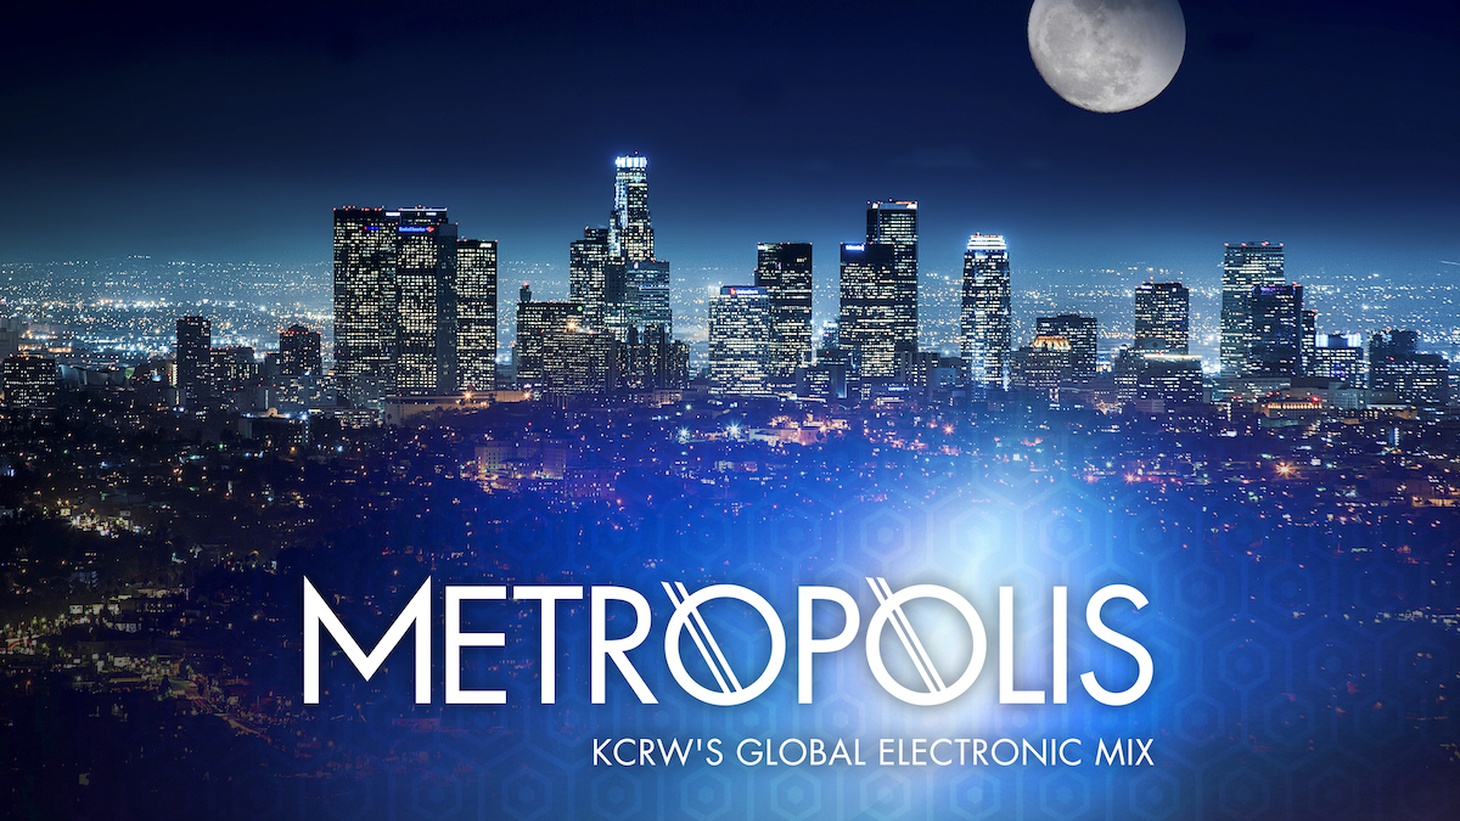 Morgan Geist of Metro Area drops in on Metropolis to share and talk about their 80s style music minus the cheese.